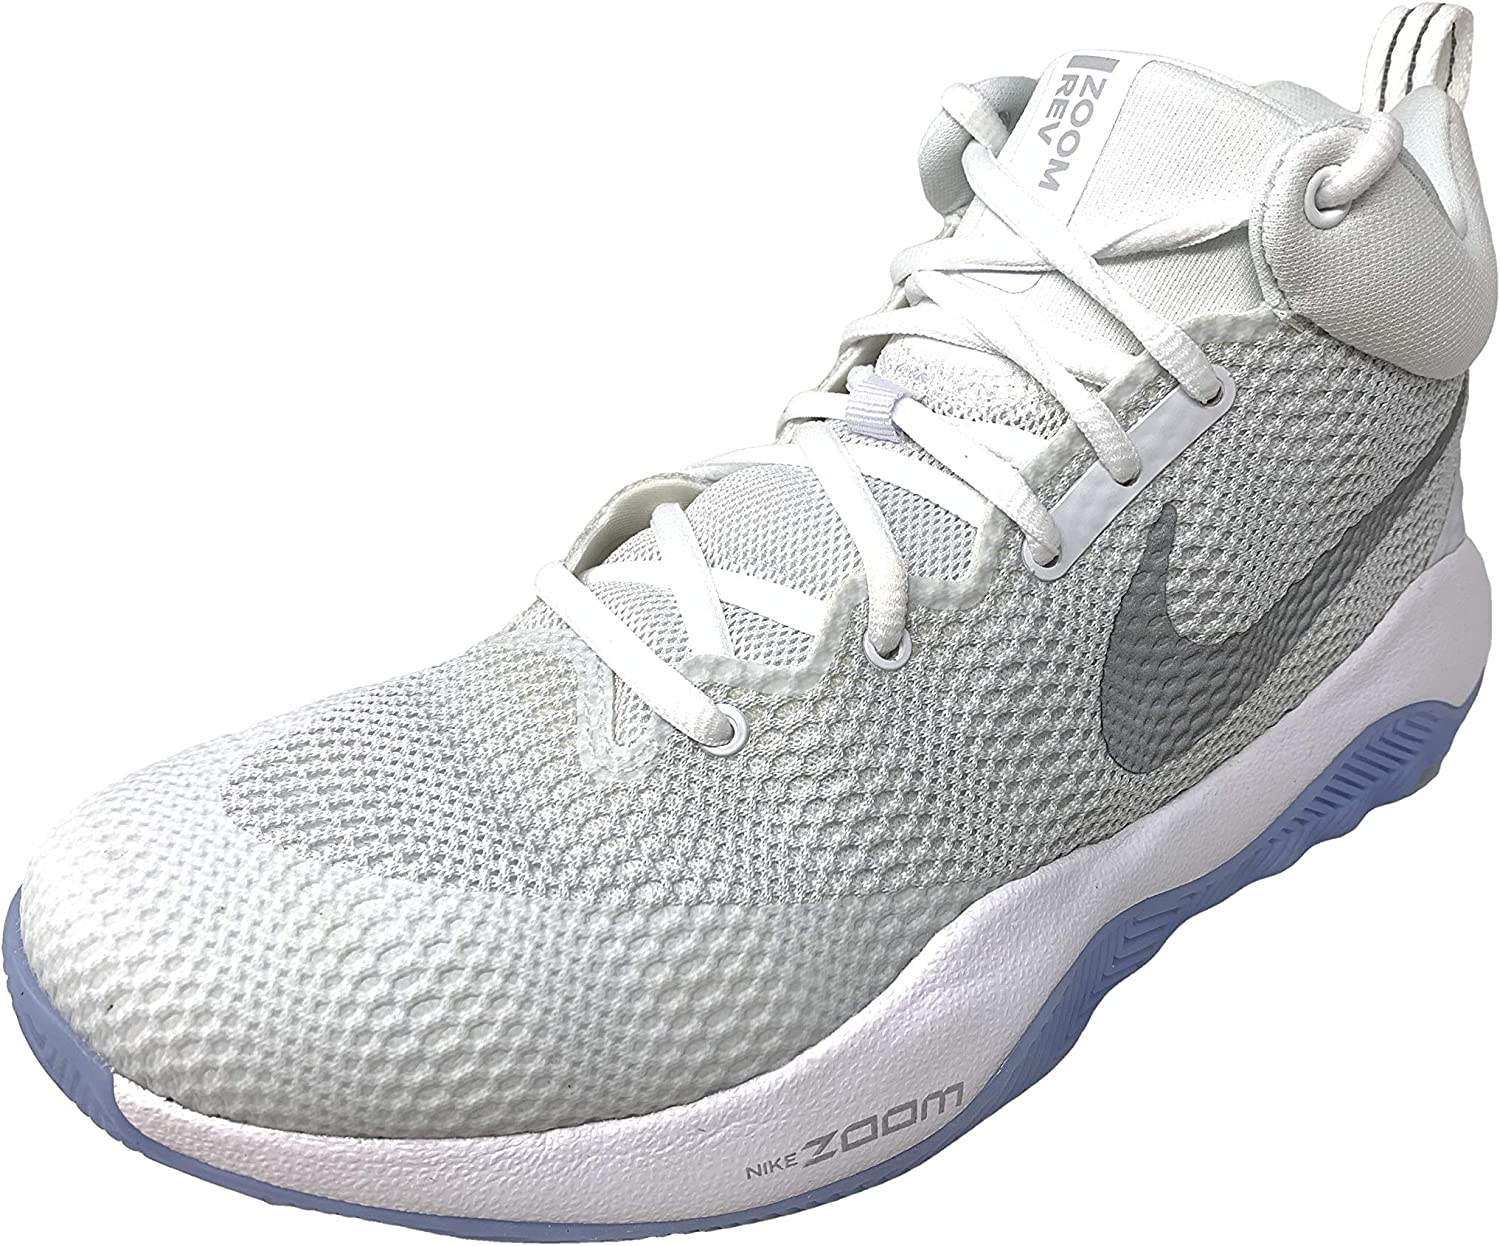 Nike Mens Zoom Rev WhiteReflect Silver 852422 100 (US 11)